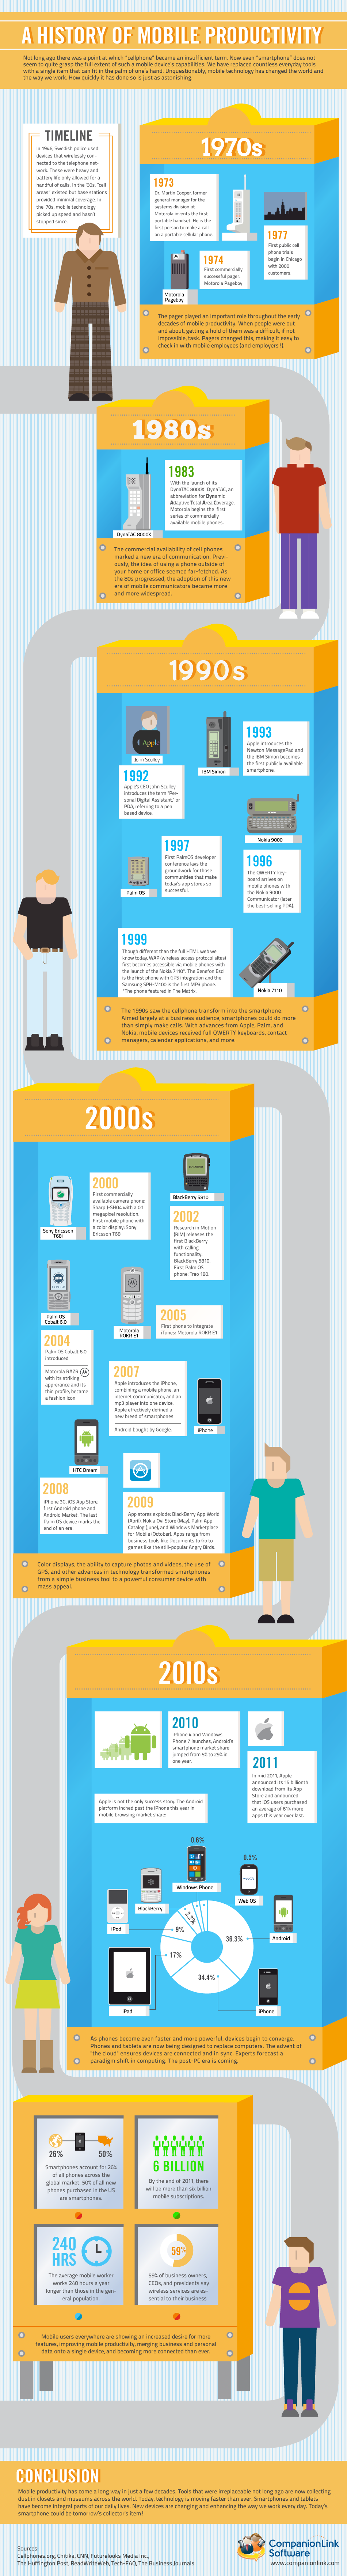 Historic Timeline Of Mobile Productivity [Infographic]